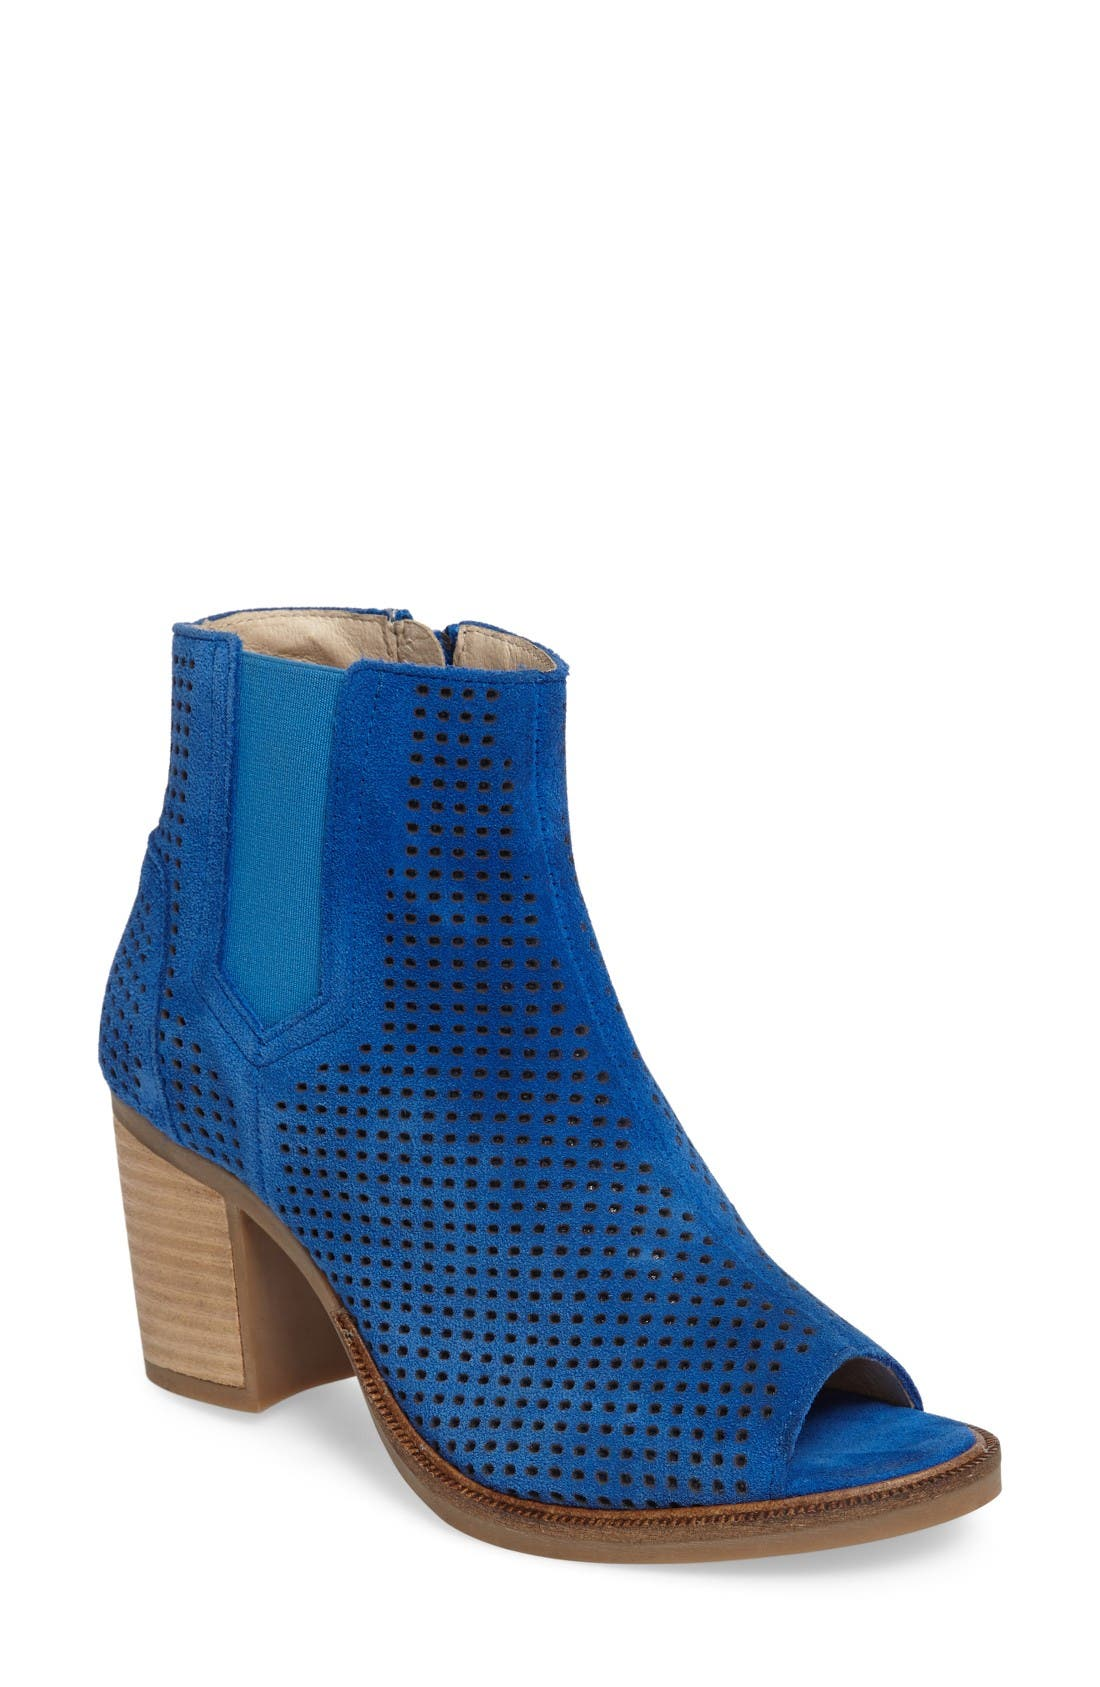 Bos. & Co. Brianna Perforated Chelsea Boot (Women)